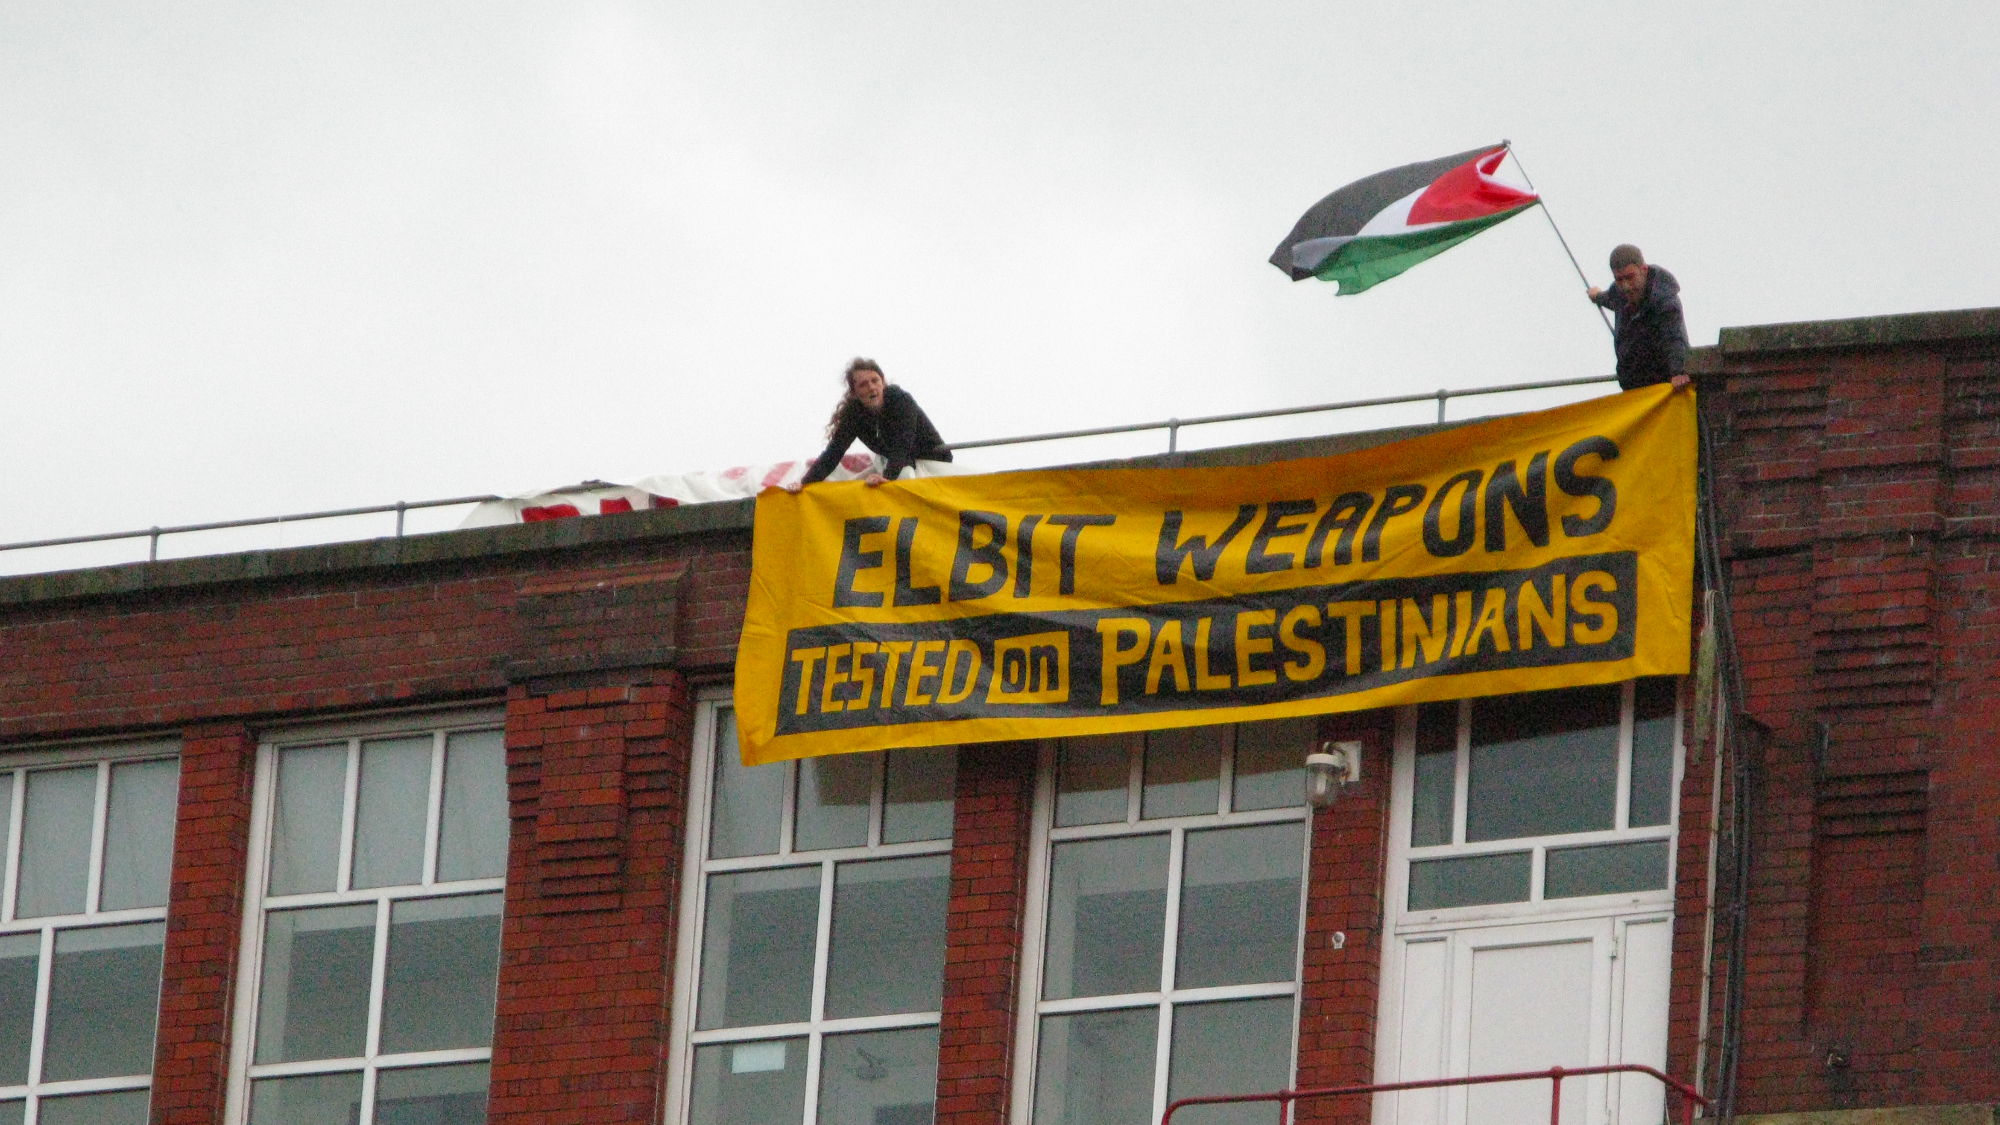 Badspiegel Jolled Activists Occupy Roof Of Israeli Owned Oldham Company Elbit